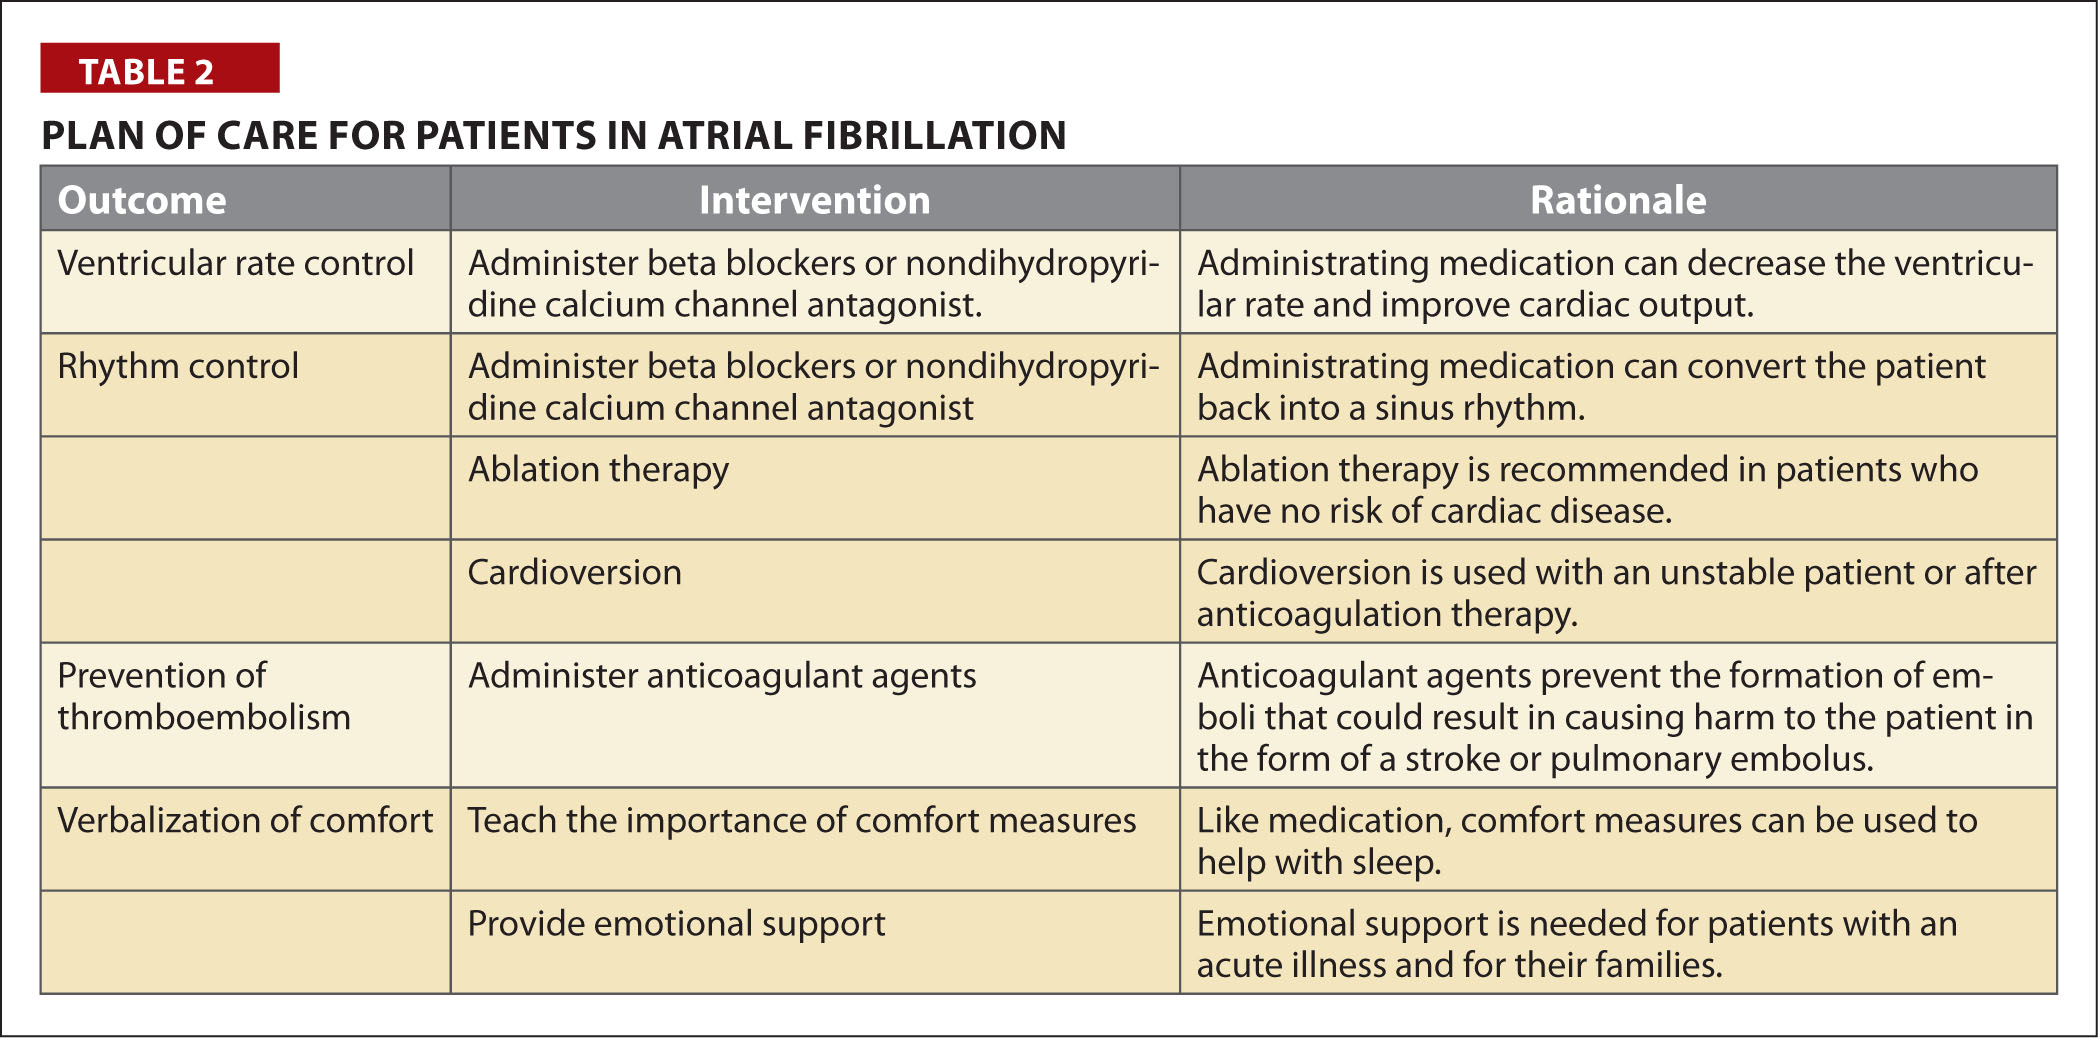 Plan of Care for Patients in Atrial Fibrillation